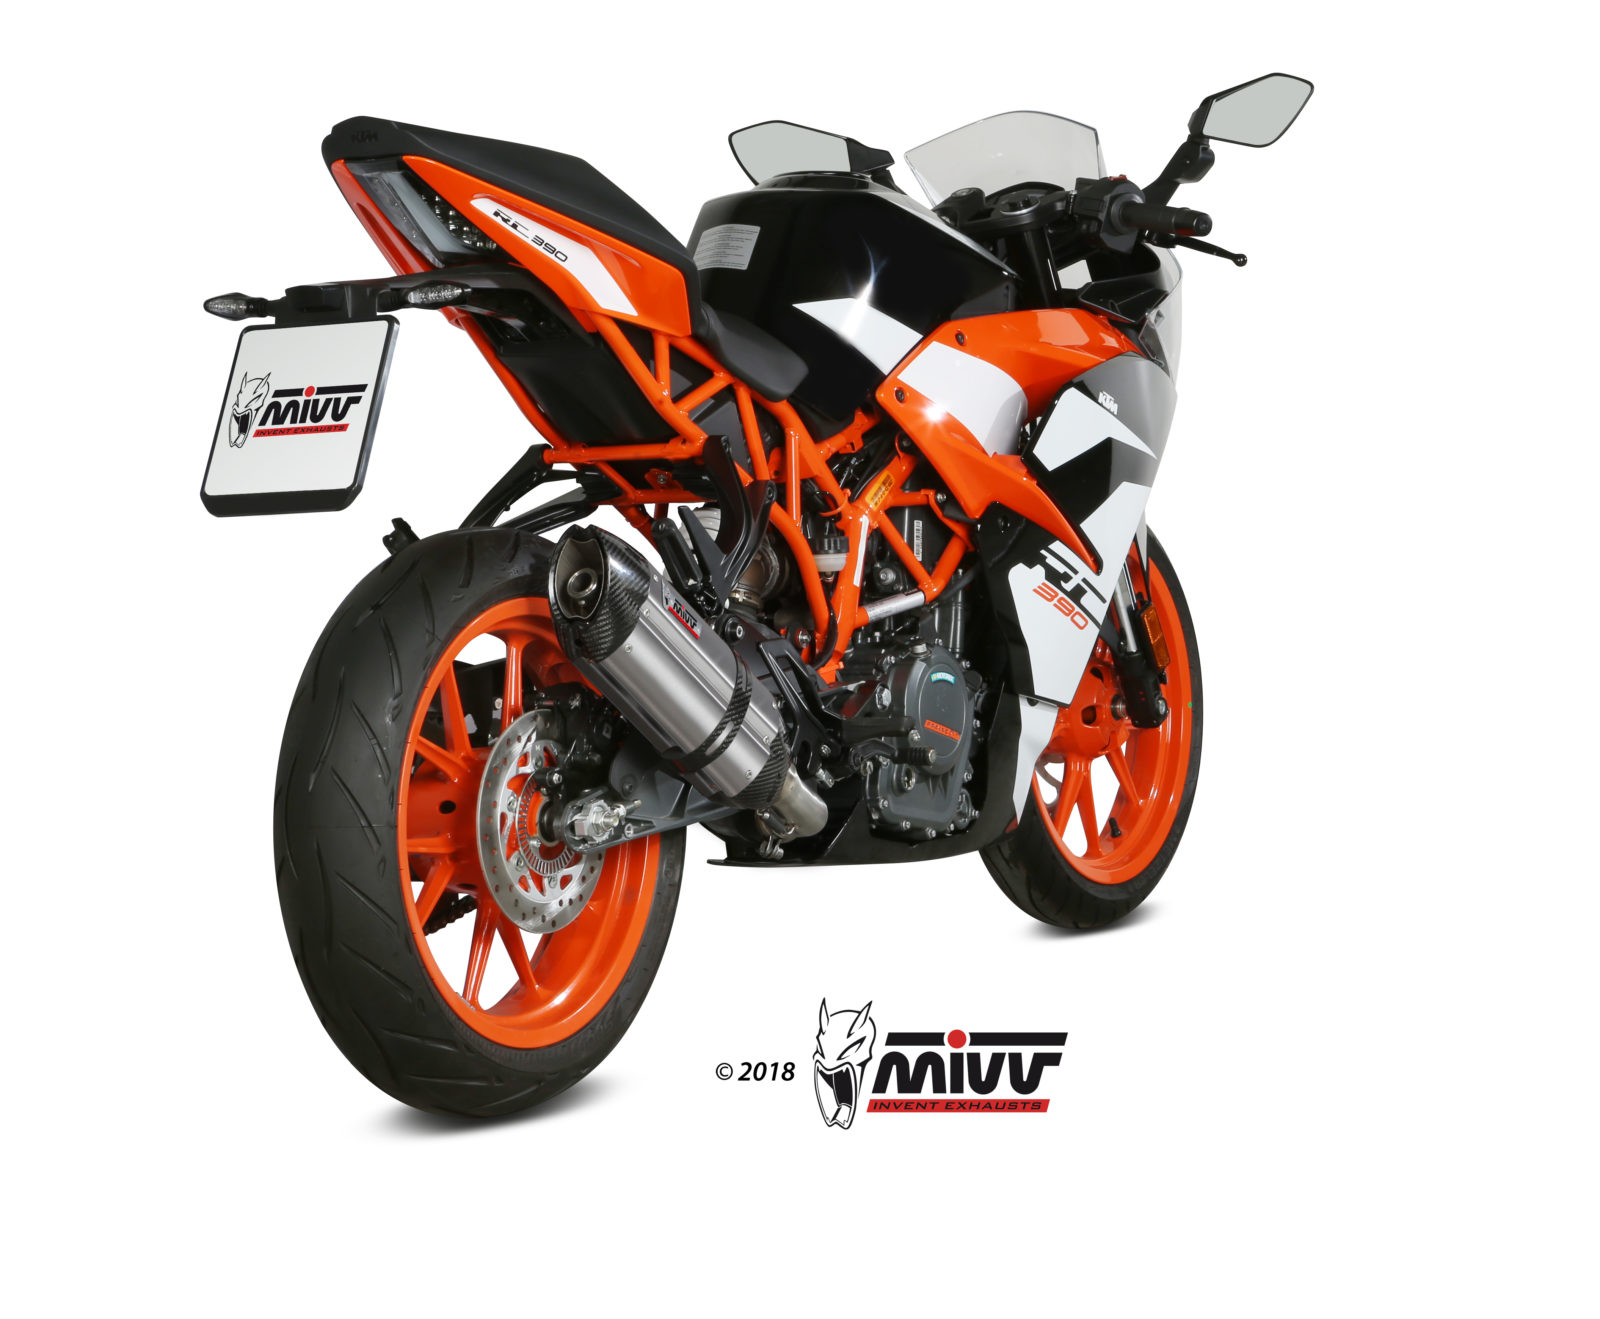 KTM RC 390 Exhaust Mivv Suono Stainless steel KT.019.L7